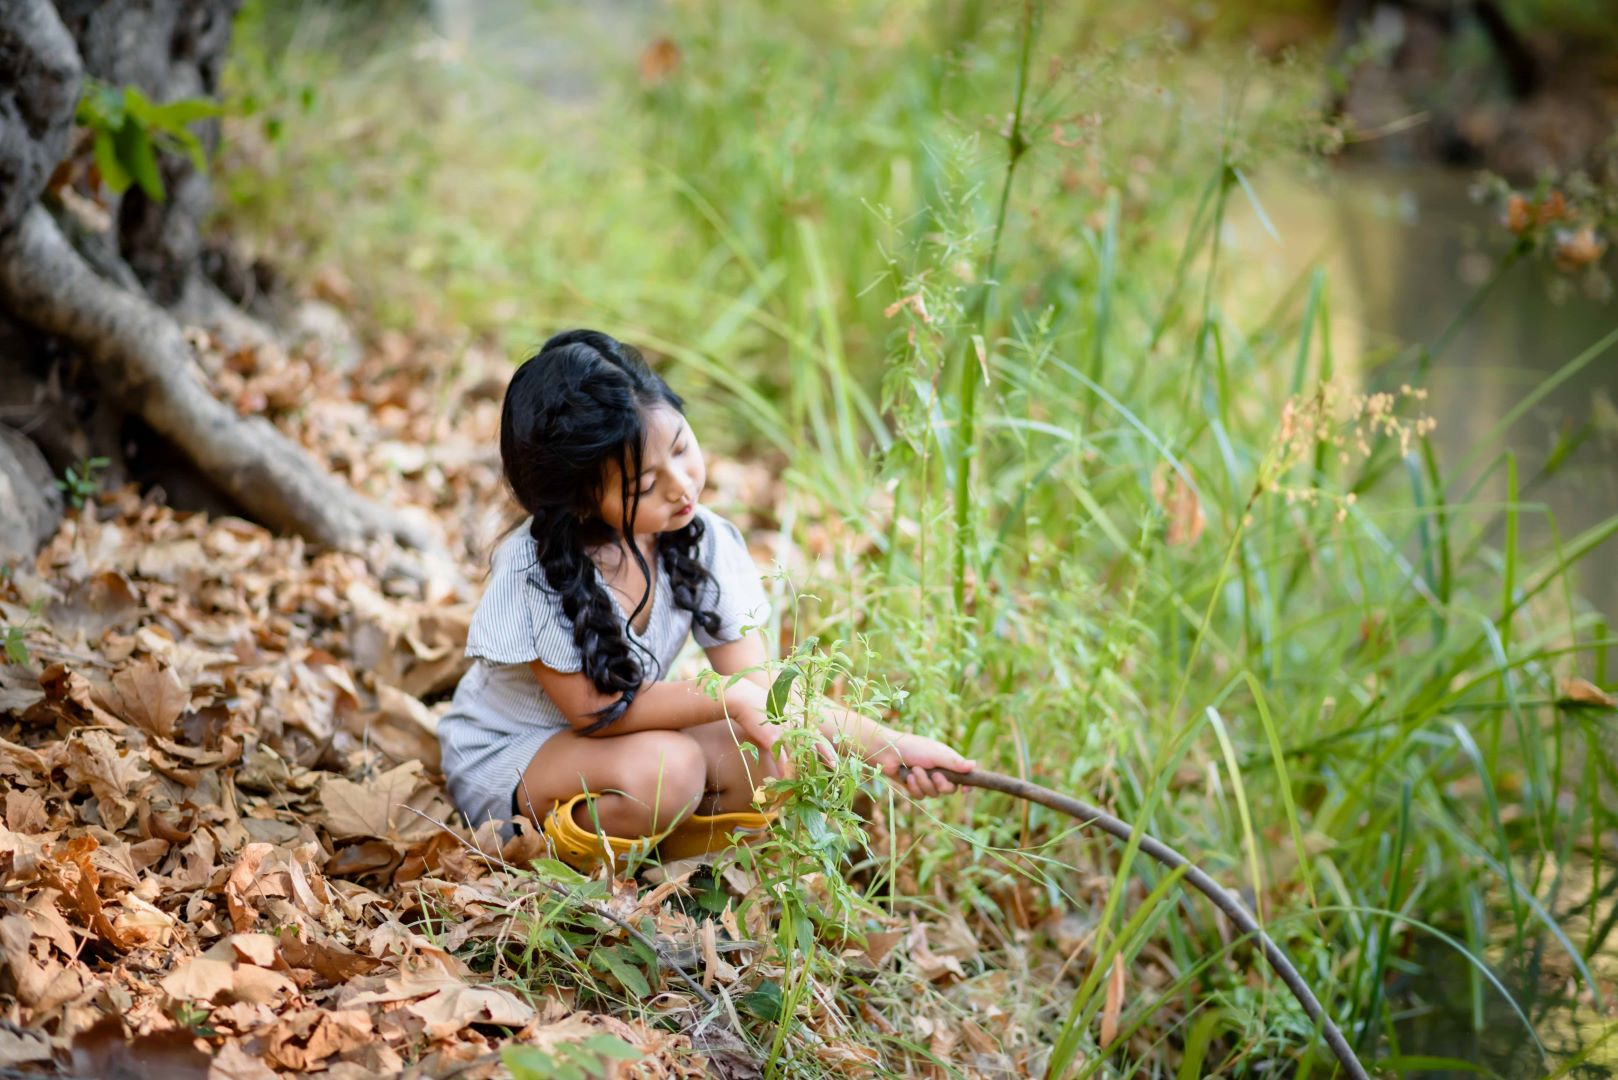 neilson outdoor family photography mcclellan ranch cupertino bay area daughter creek play dream